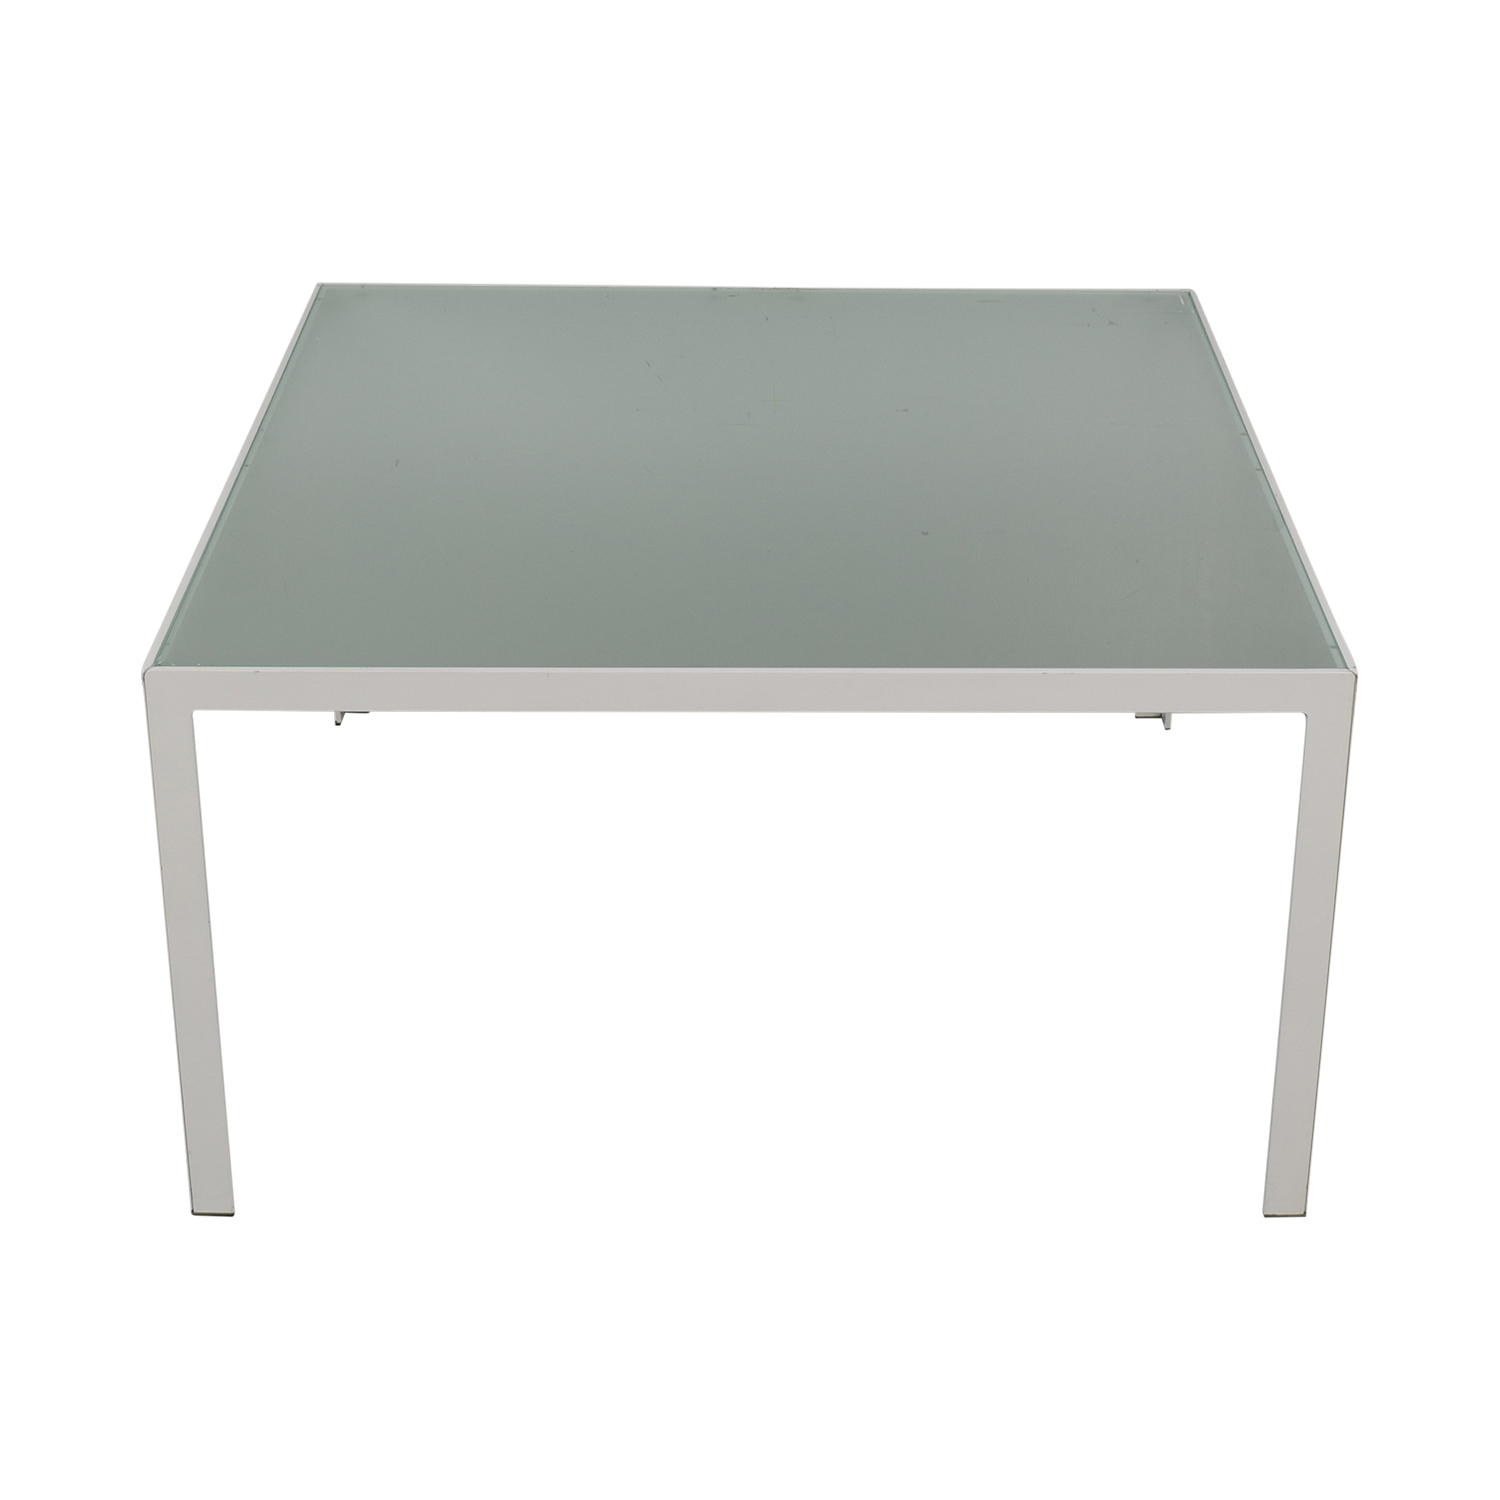 buy Monica Armani White and Glass Dining Table Monica Armani Tables